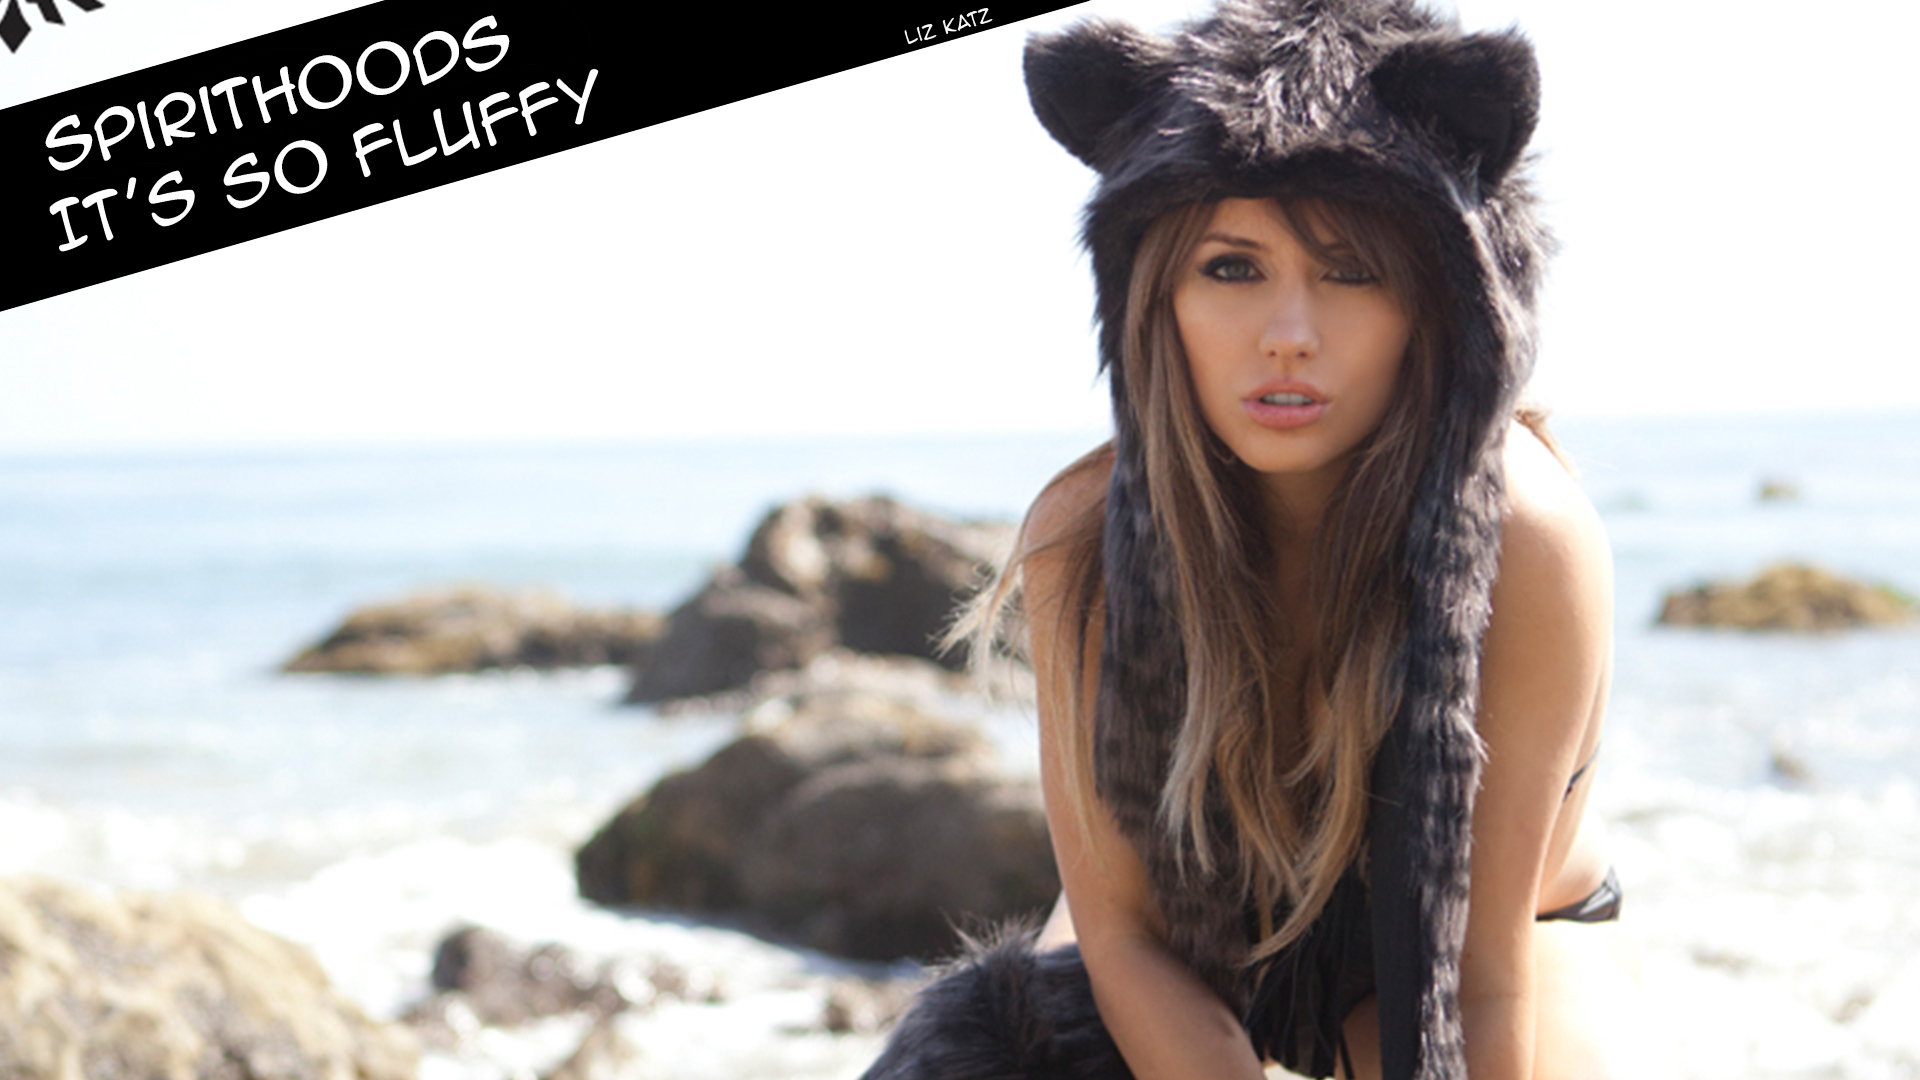 Spirithoods | It's So Fluffy